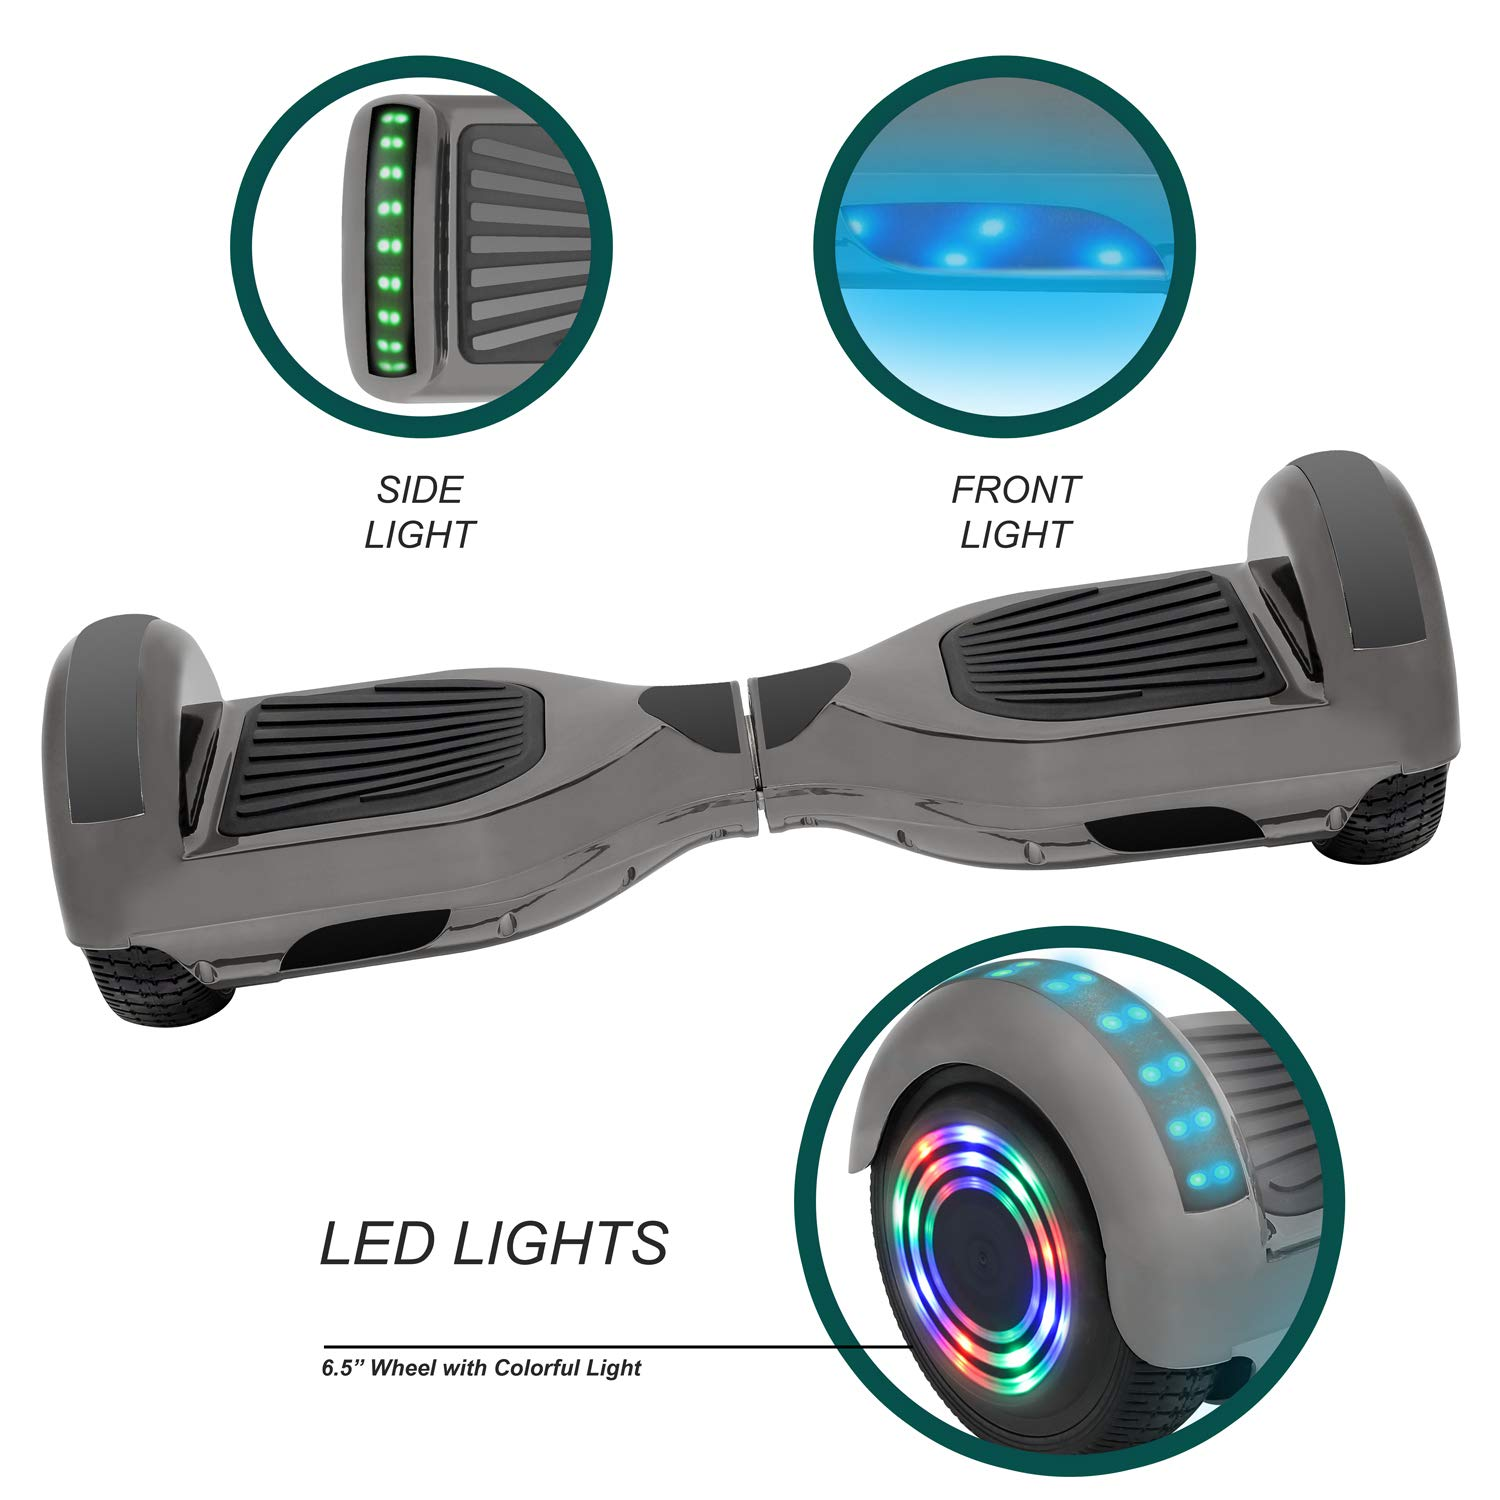 NHT 6.5'' Hoverboard Electric Self Balancing Scooter Sidelights - UL2272 Certified Black, Blue, Pink, Red, White (Chrome Black) by NHT (Image #2)